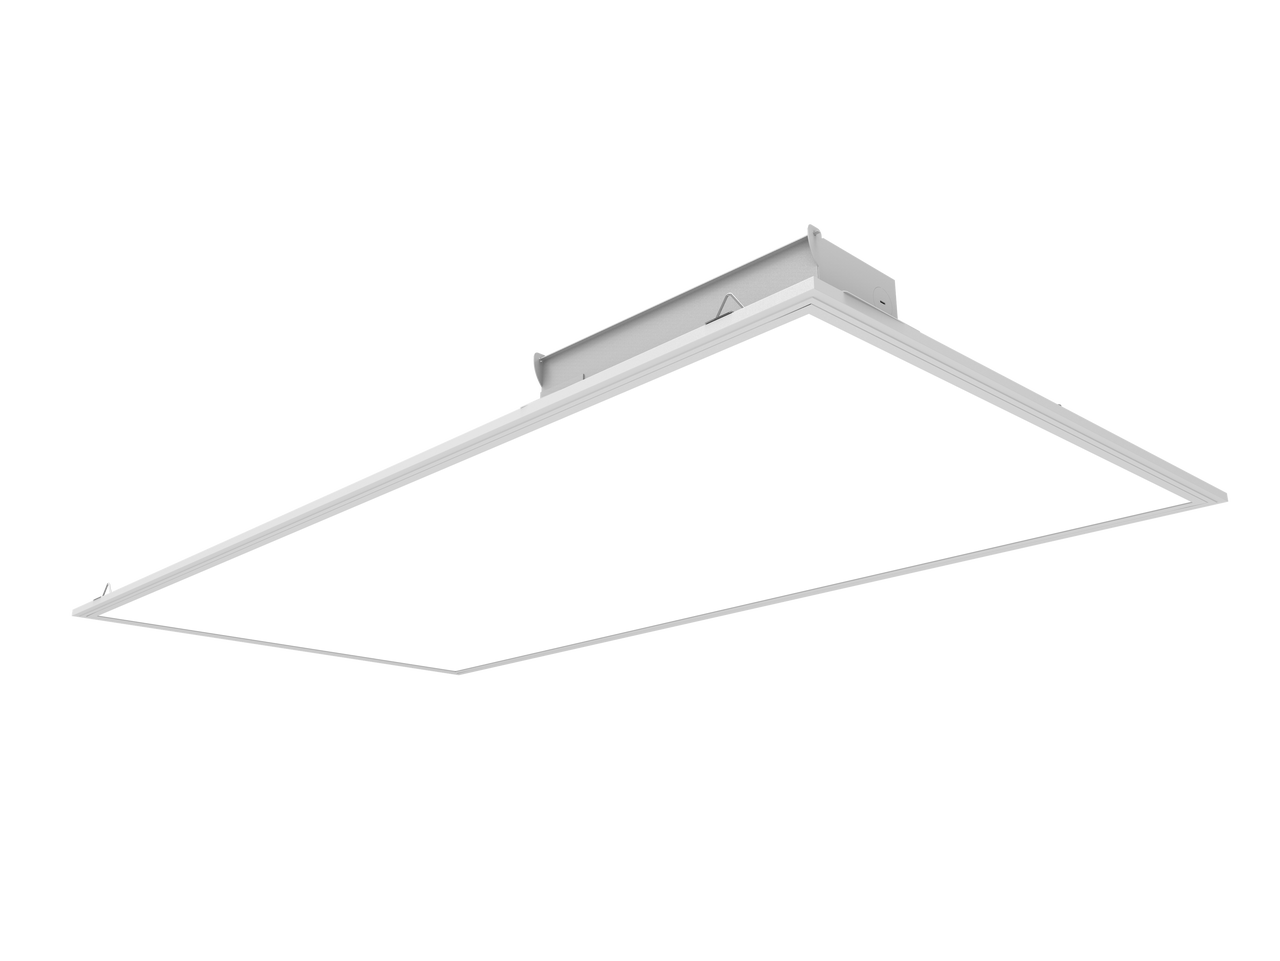 Led Flat Panel 2x4 4000k Cool White Dimmable For Standard Drop Ceilings In 2020 Light Fixtures Ceiling Mount Light Fixtures Led Light Fixtures